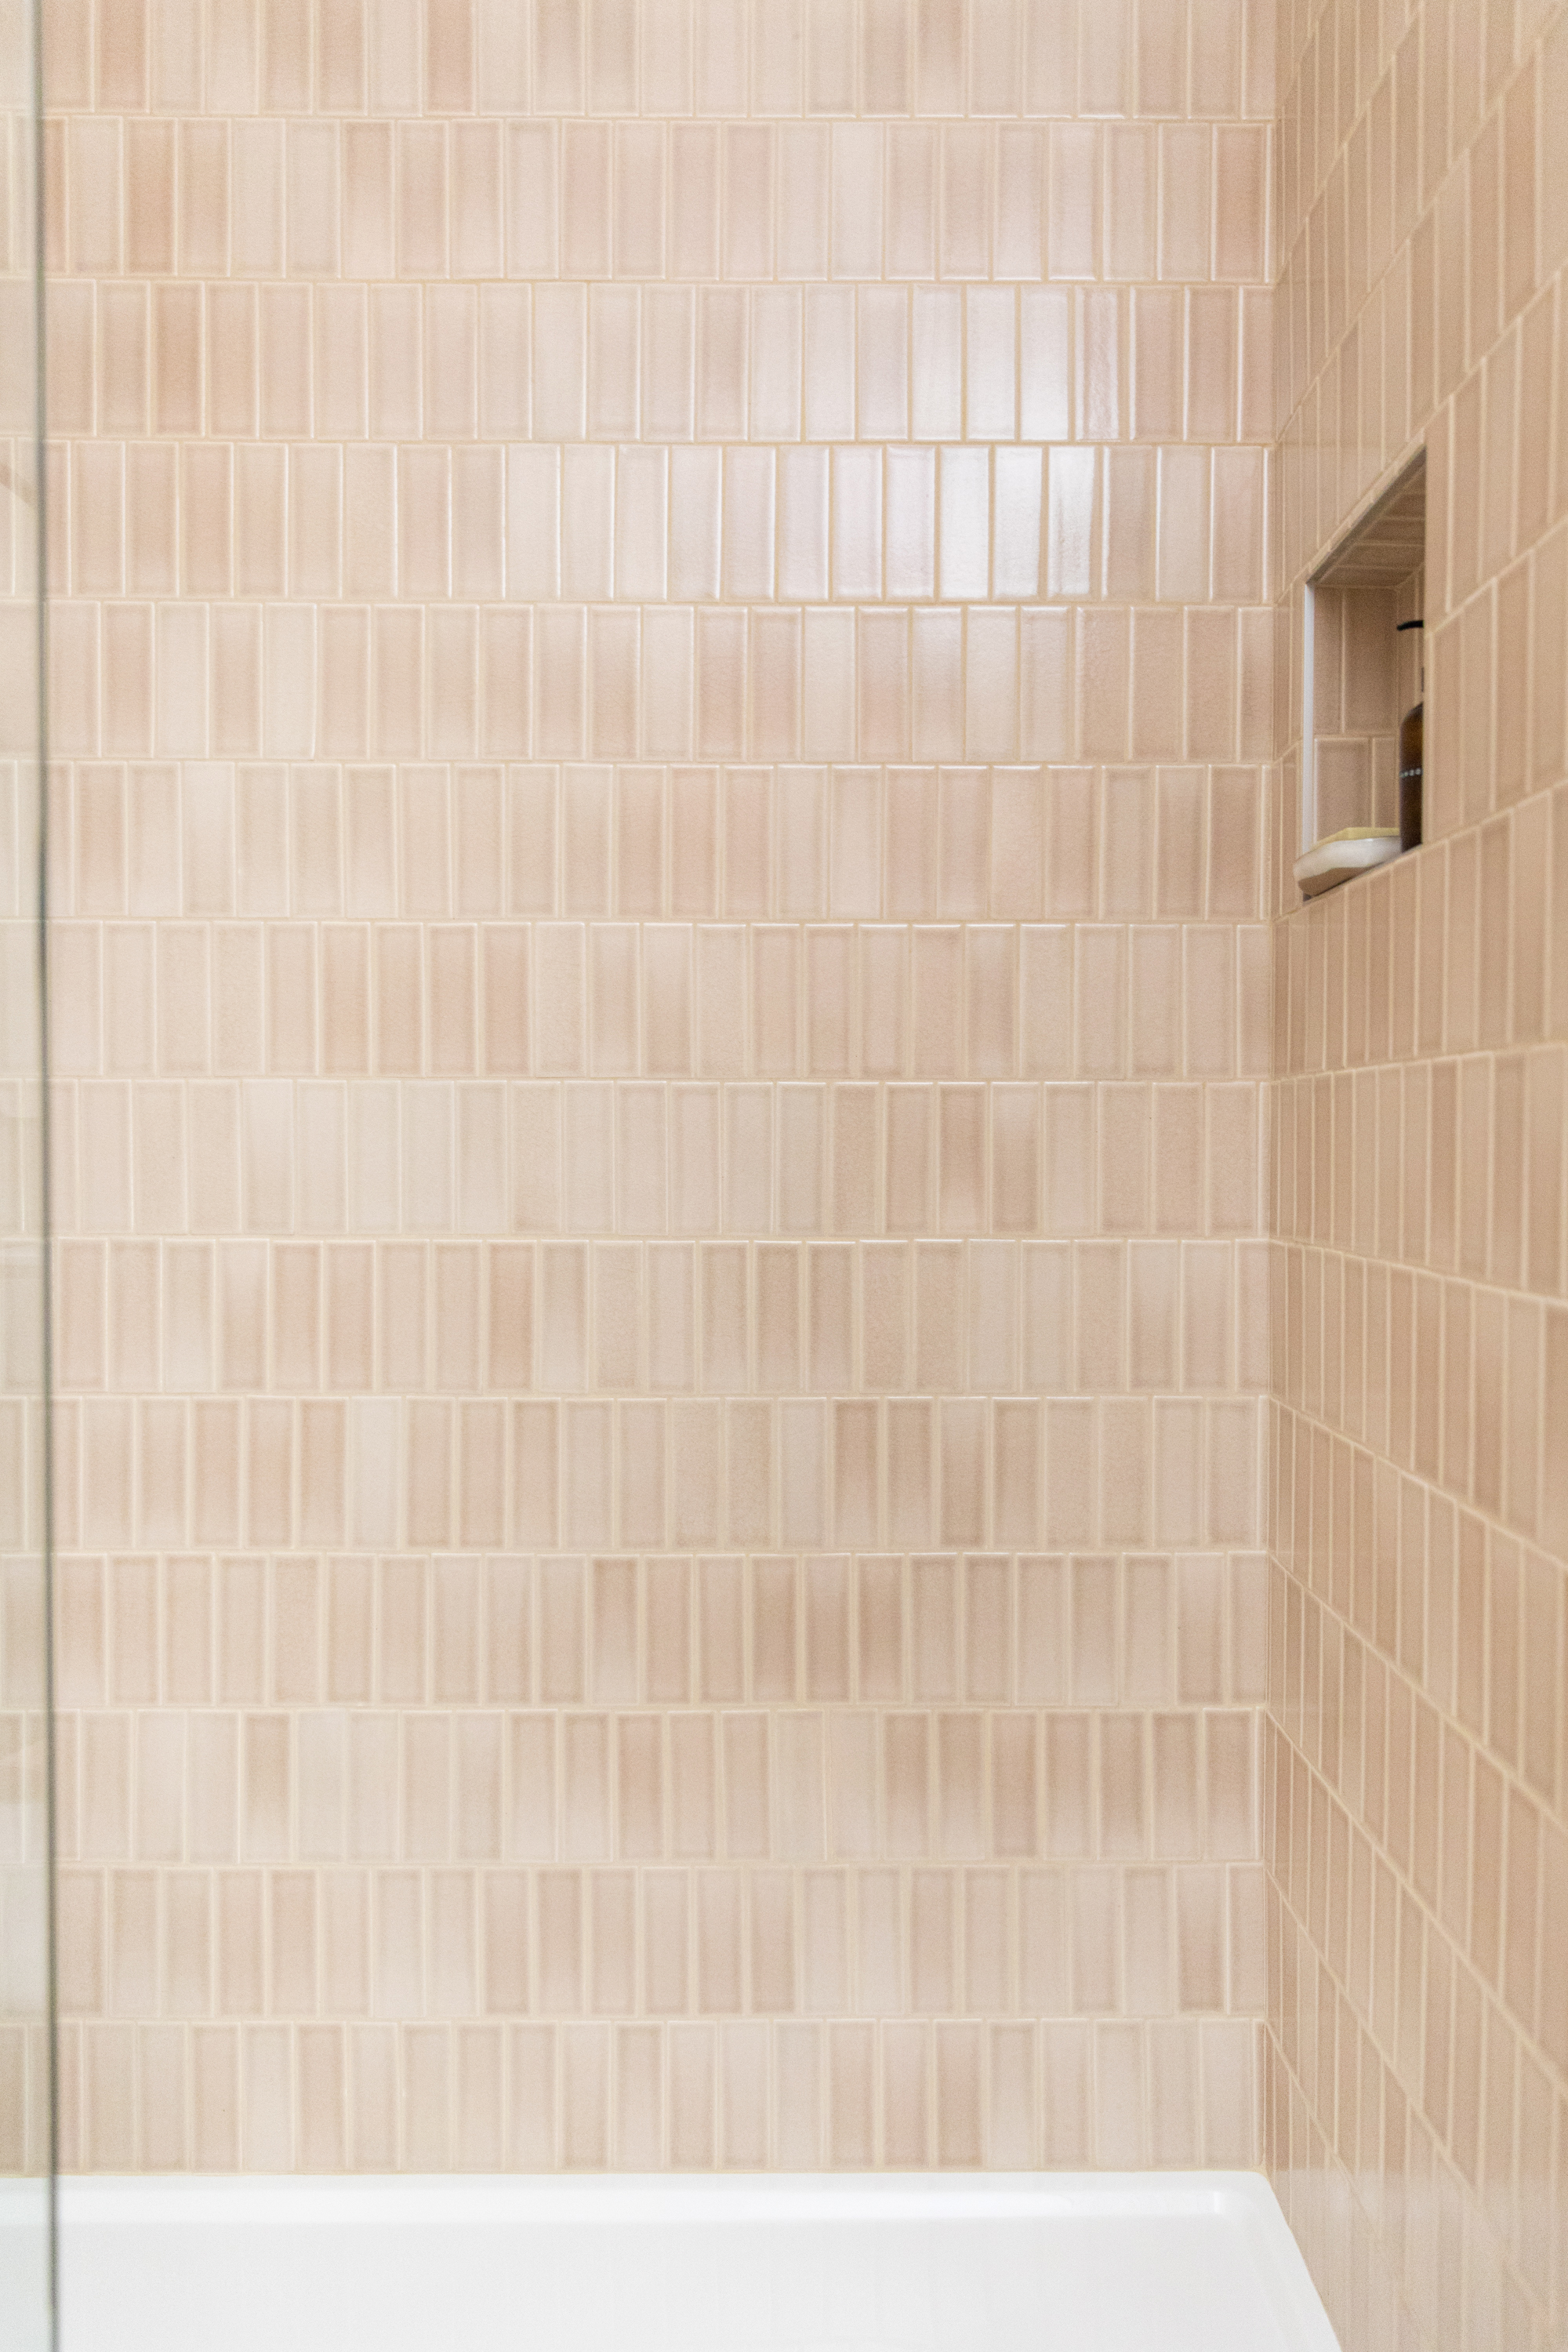 2x6 Sand Dune tiles cover these shower walls.